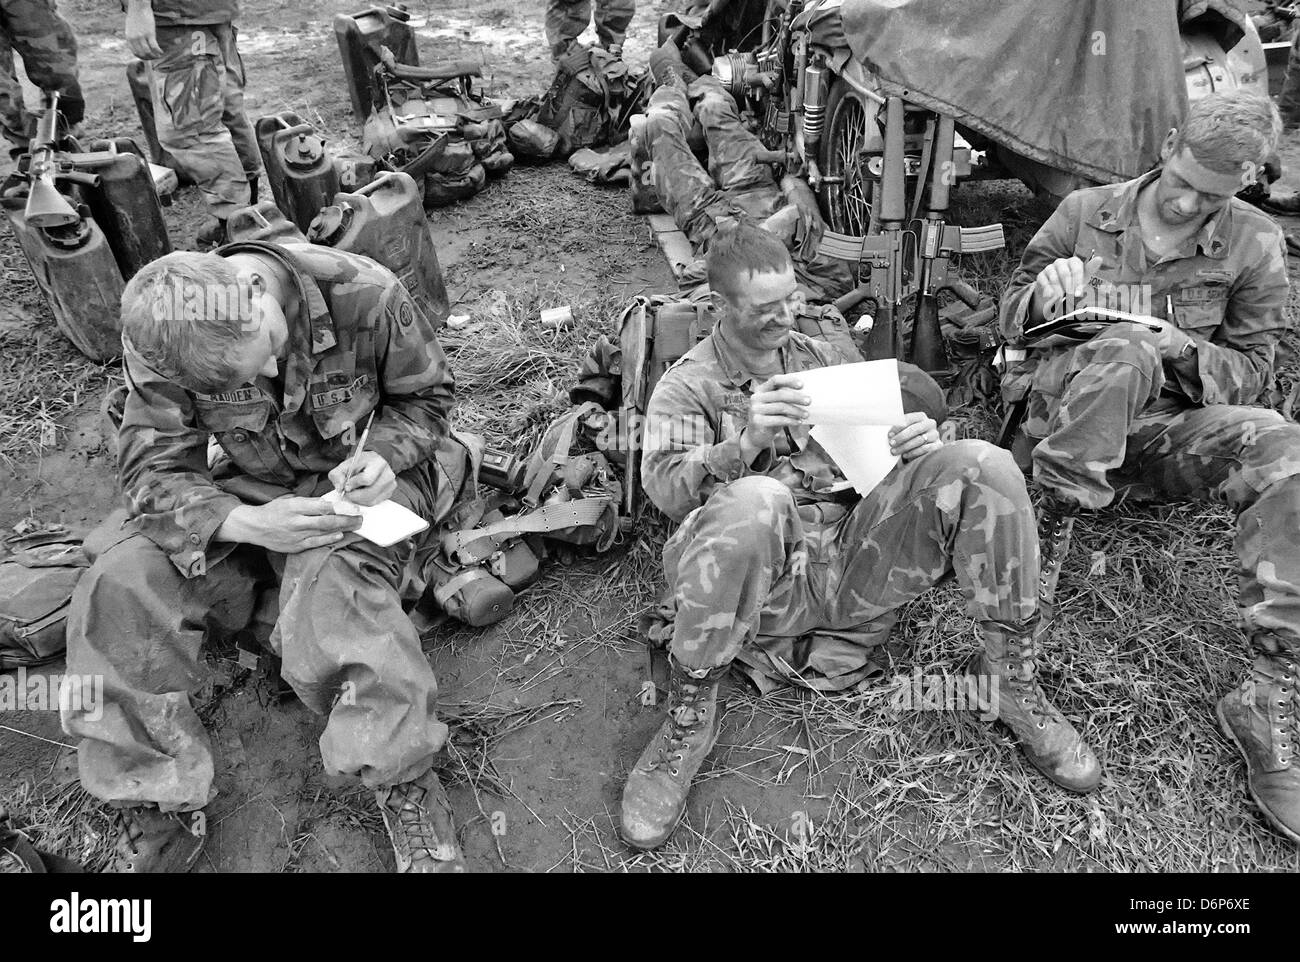 Members of the 82nd Airborne Division write letters while taking a break on a ridge during the Invasion of Grenada, - Stock Image